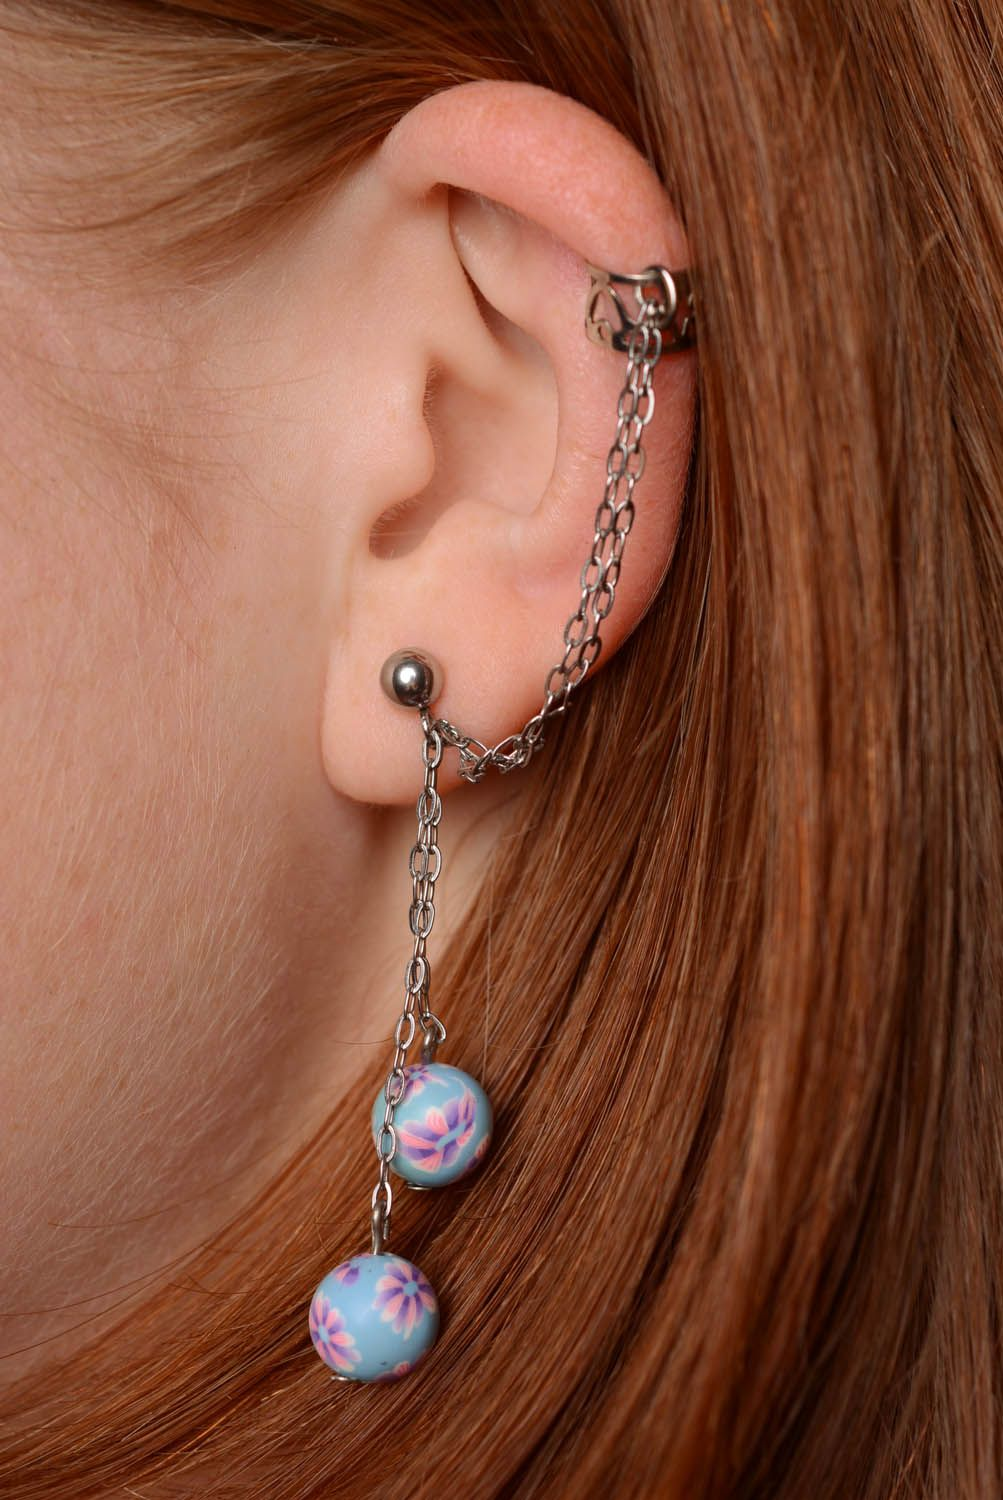 Earrings cuffs Courage photo 3